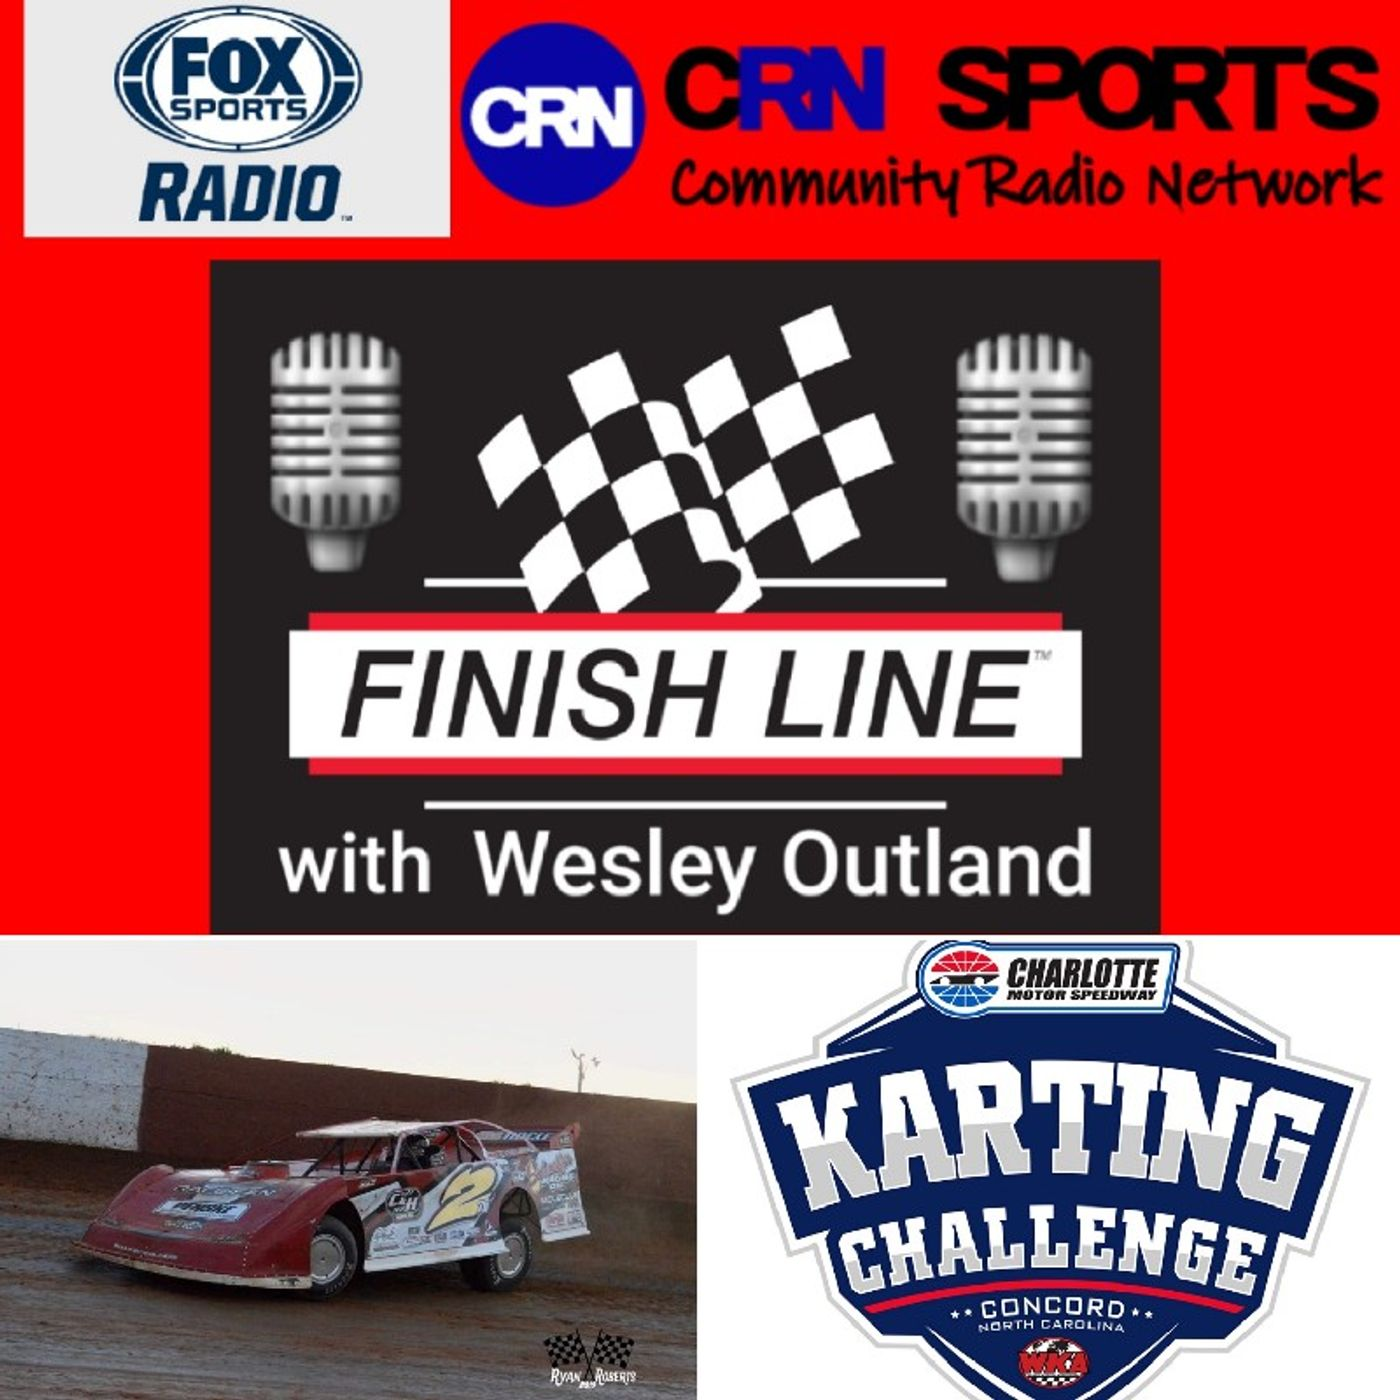 June 19th #FinishLine w/ Brandon Overton #USA100, #CMSKartingChallenge Preview w/ Mackie Flood, Austin Yarbrough, Phil Combs & Paul Szmal!